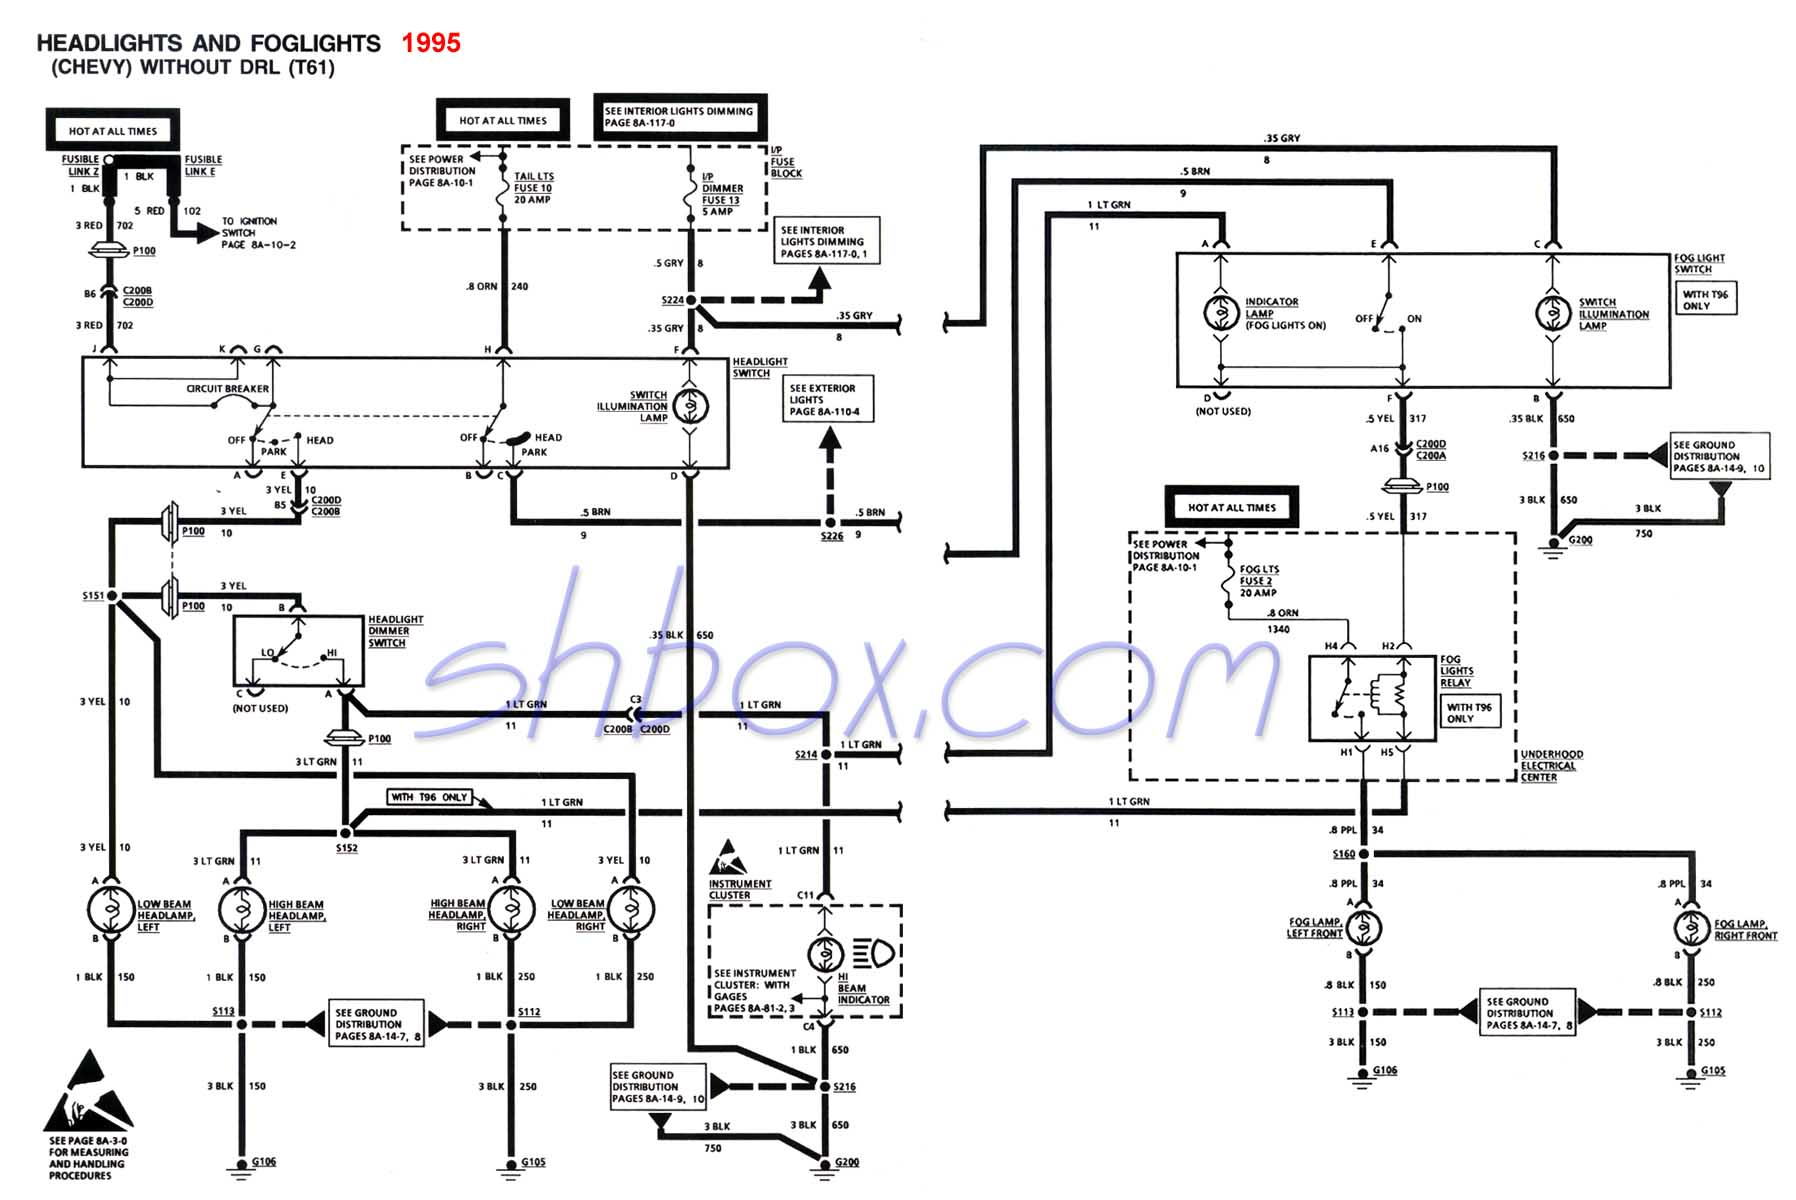 hight resolution of 95 firebird monsoon stereo wiring diagrams wiring library 2000 pontiac trans am wiring diagram simple wiring